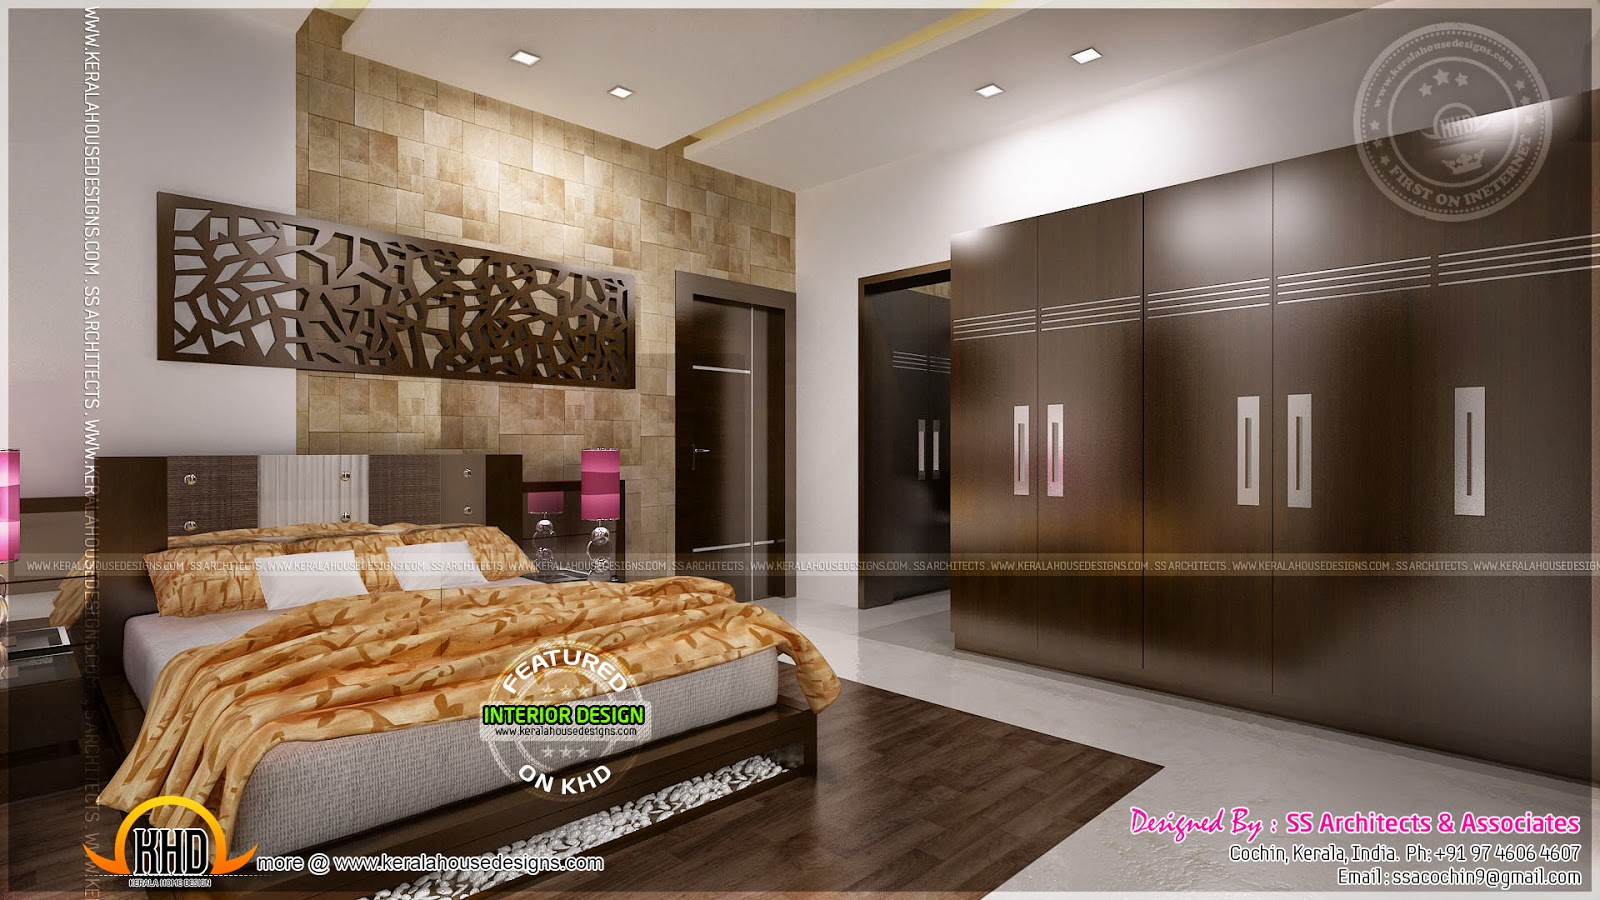 Awesome master bedroom interior kerala home design and for Simple indian bedroom interior design ideas